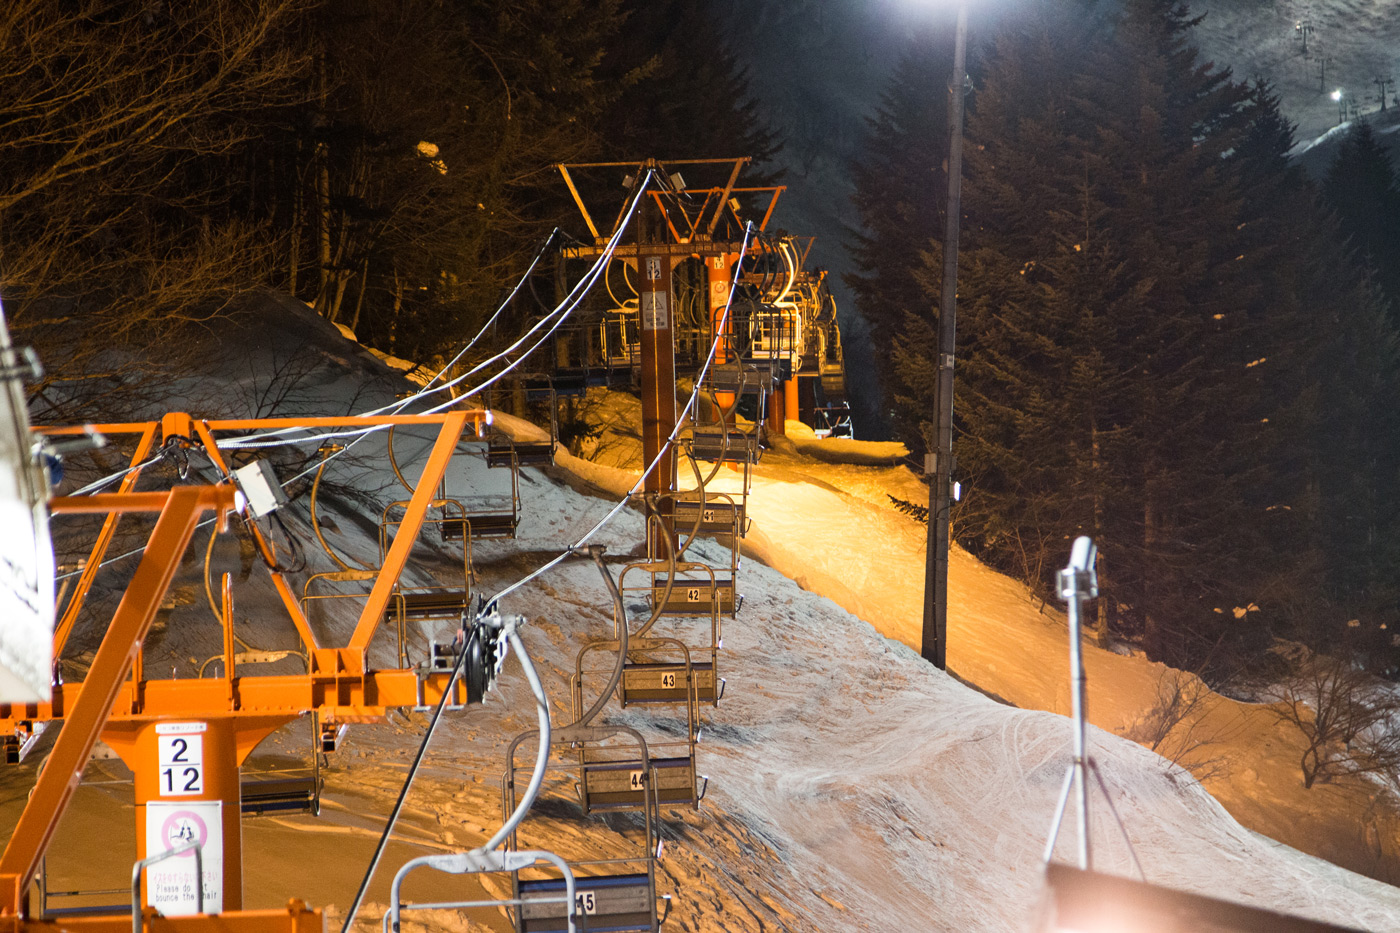 Chairlift by night